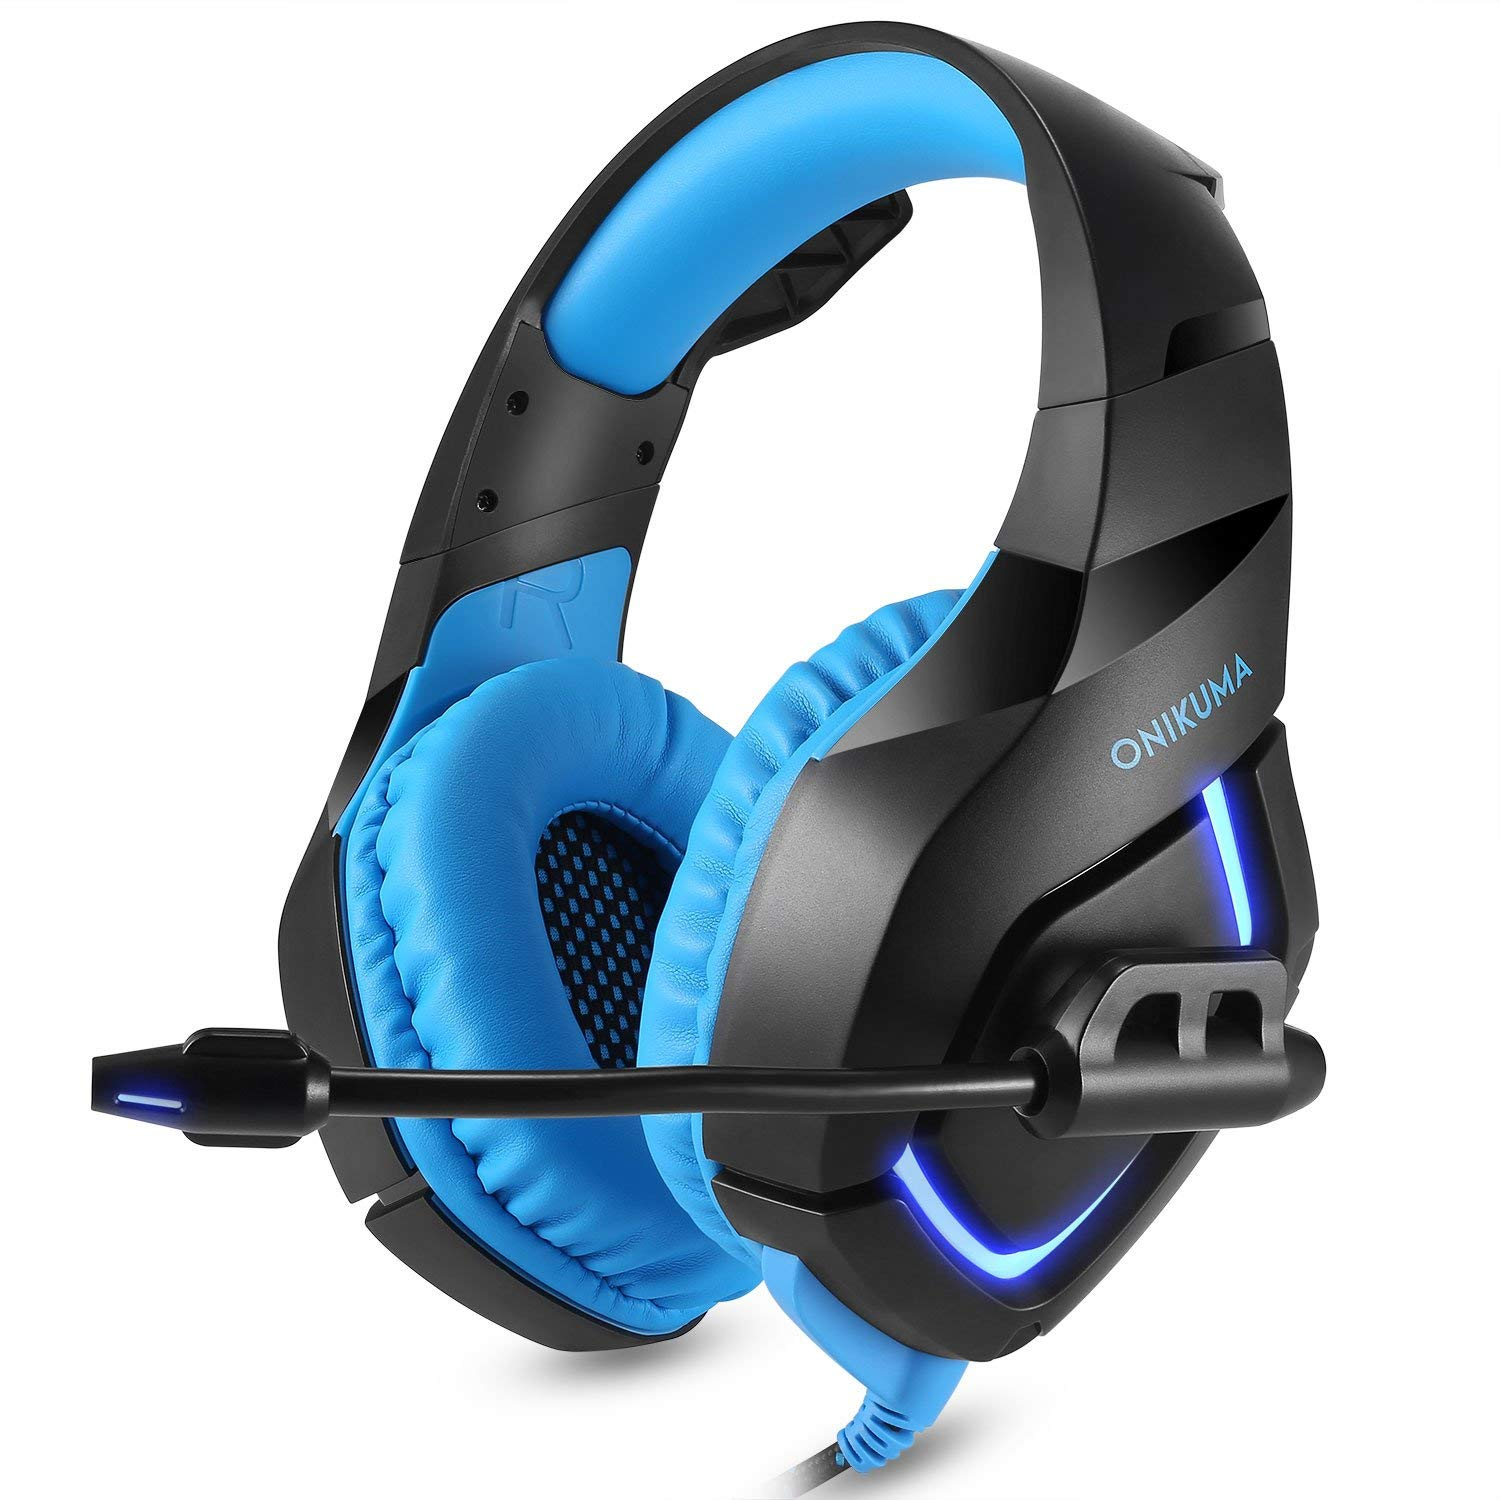 Stereo Gaming Headset for PS4, PC, Xbox One Controller, Noise Cancelling Over Ear Headphones with Mic, LED Light, Bass Surround, Soft Memory Earmuffs for Laptop Mac Nintendo Switch Games by ONIKUMA